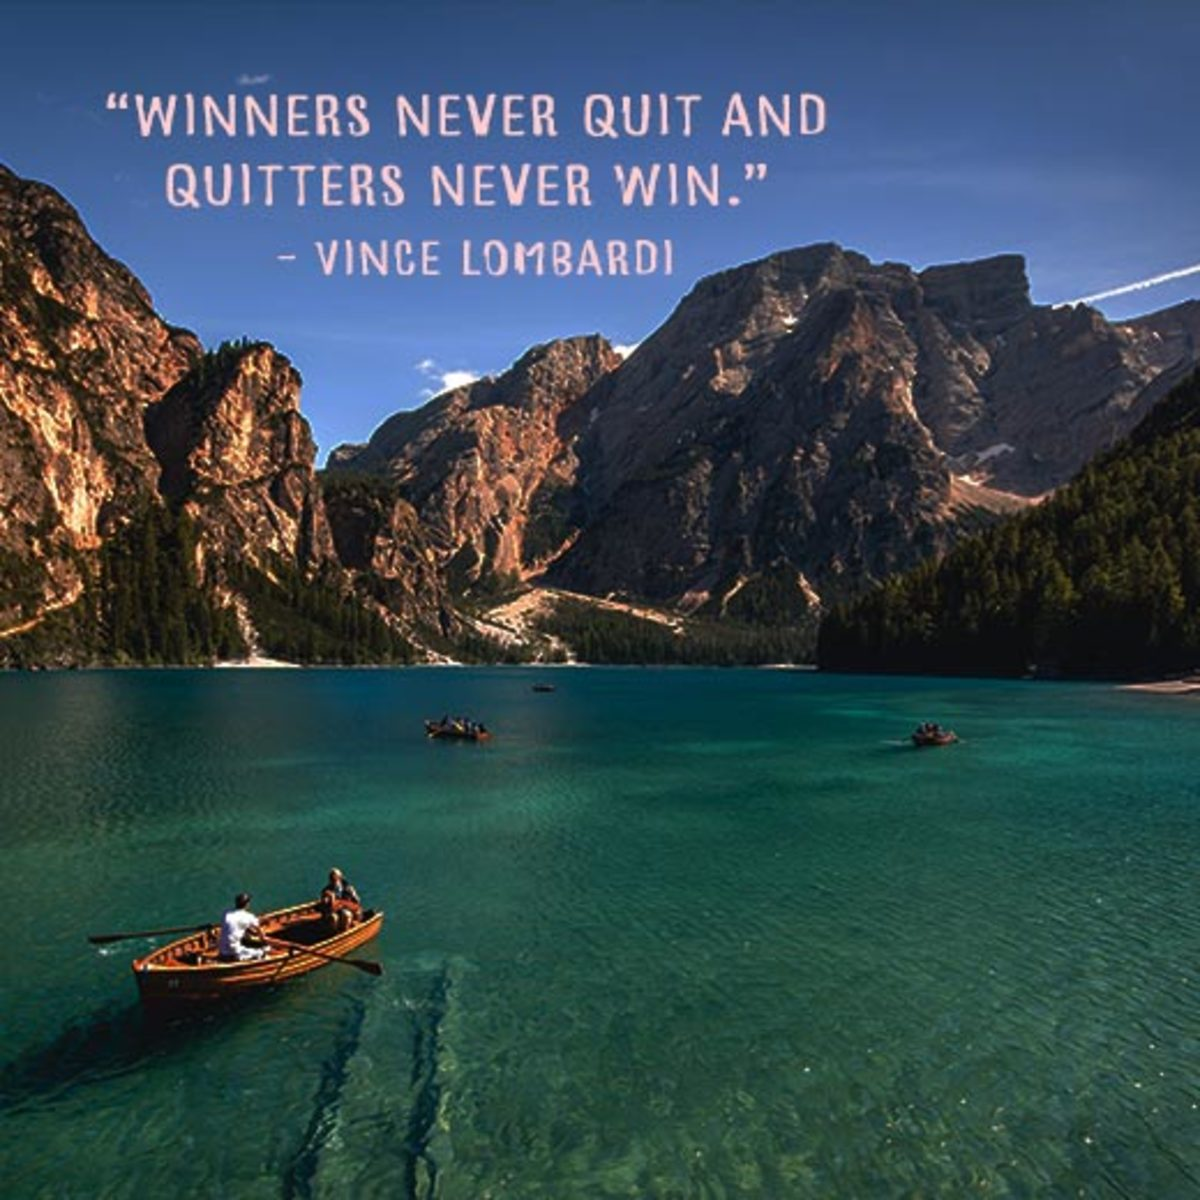 """""""Winners never quit and quitters never win."""" - Vince Lombardi"""